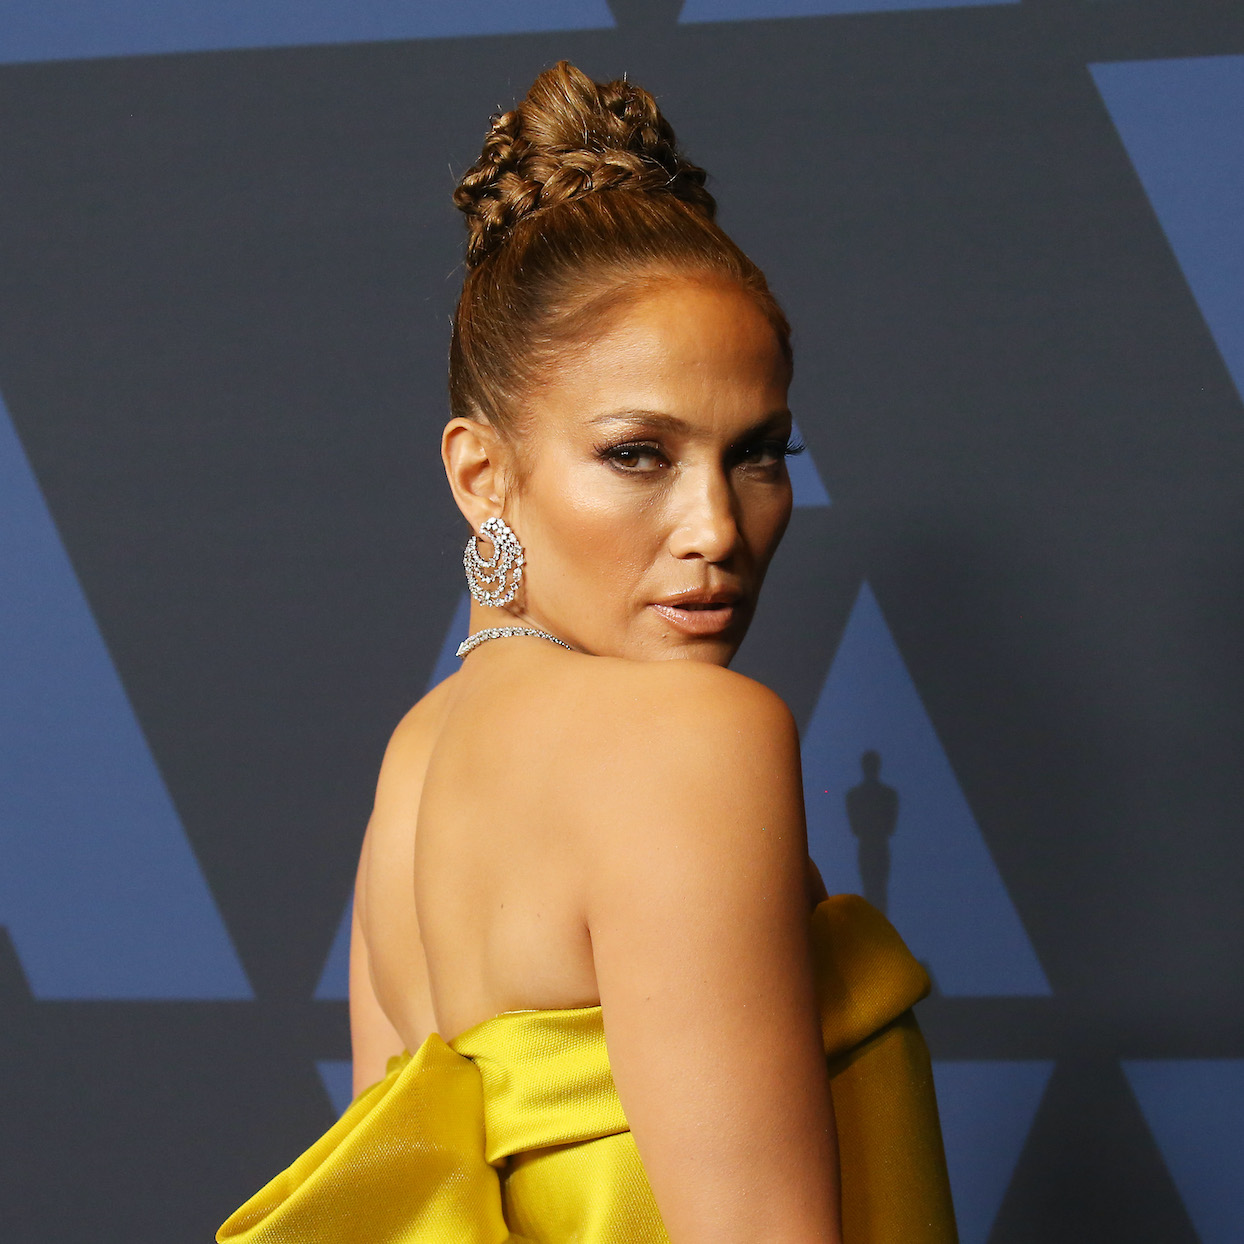 Jennifer Lopez arrives to the Academy of Motion Picture Arts and Sciences' 11th Annual Governors Awards held at The Ray Dolby Ballroom at Hollywood & Highland Center on October 27, 2019 in Hollywood, California